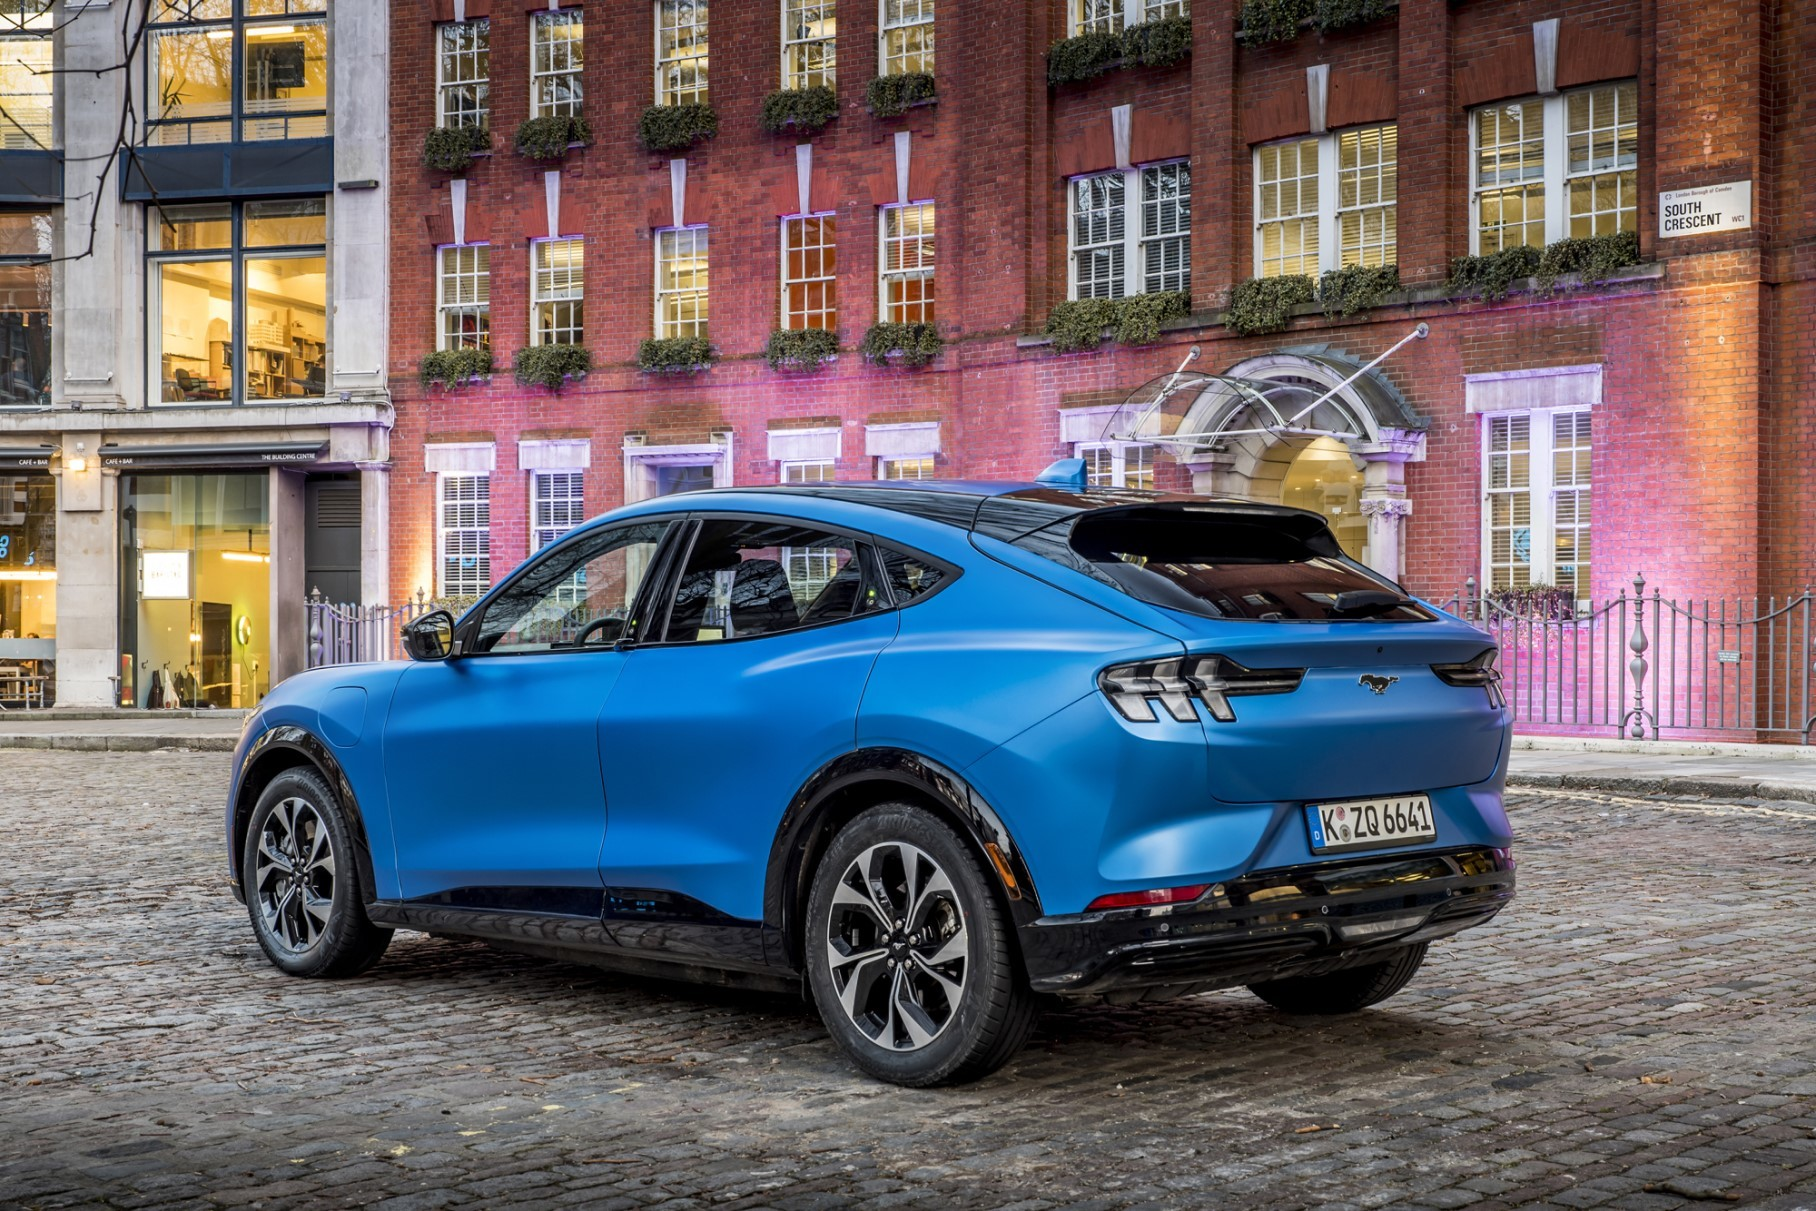 Ford has premiered its new all-electric SUV, the 'Mustang' Mach-E,  in London, Great Britain. Let us see what the European spec has of interest.